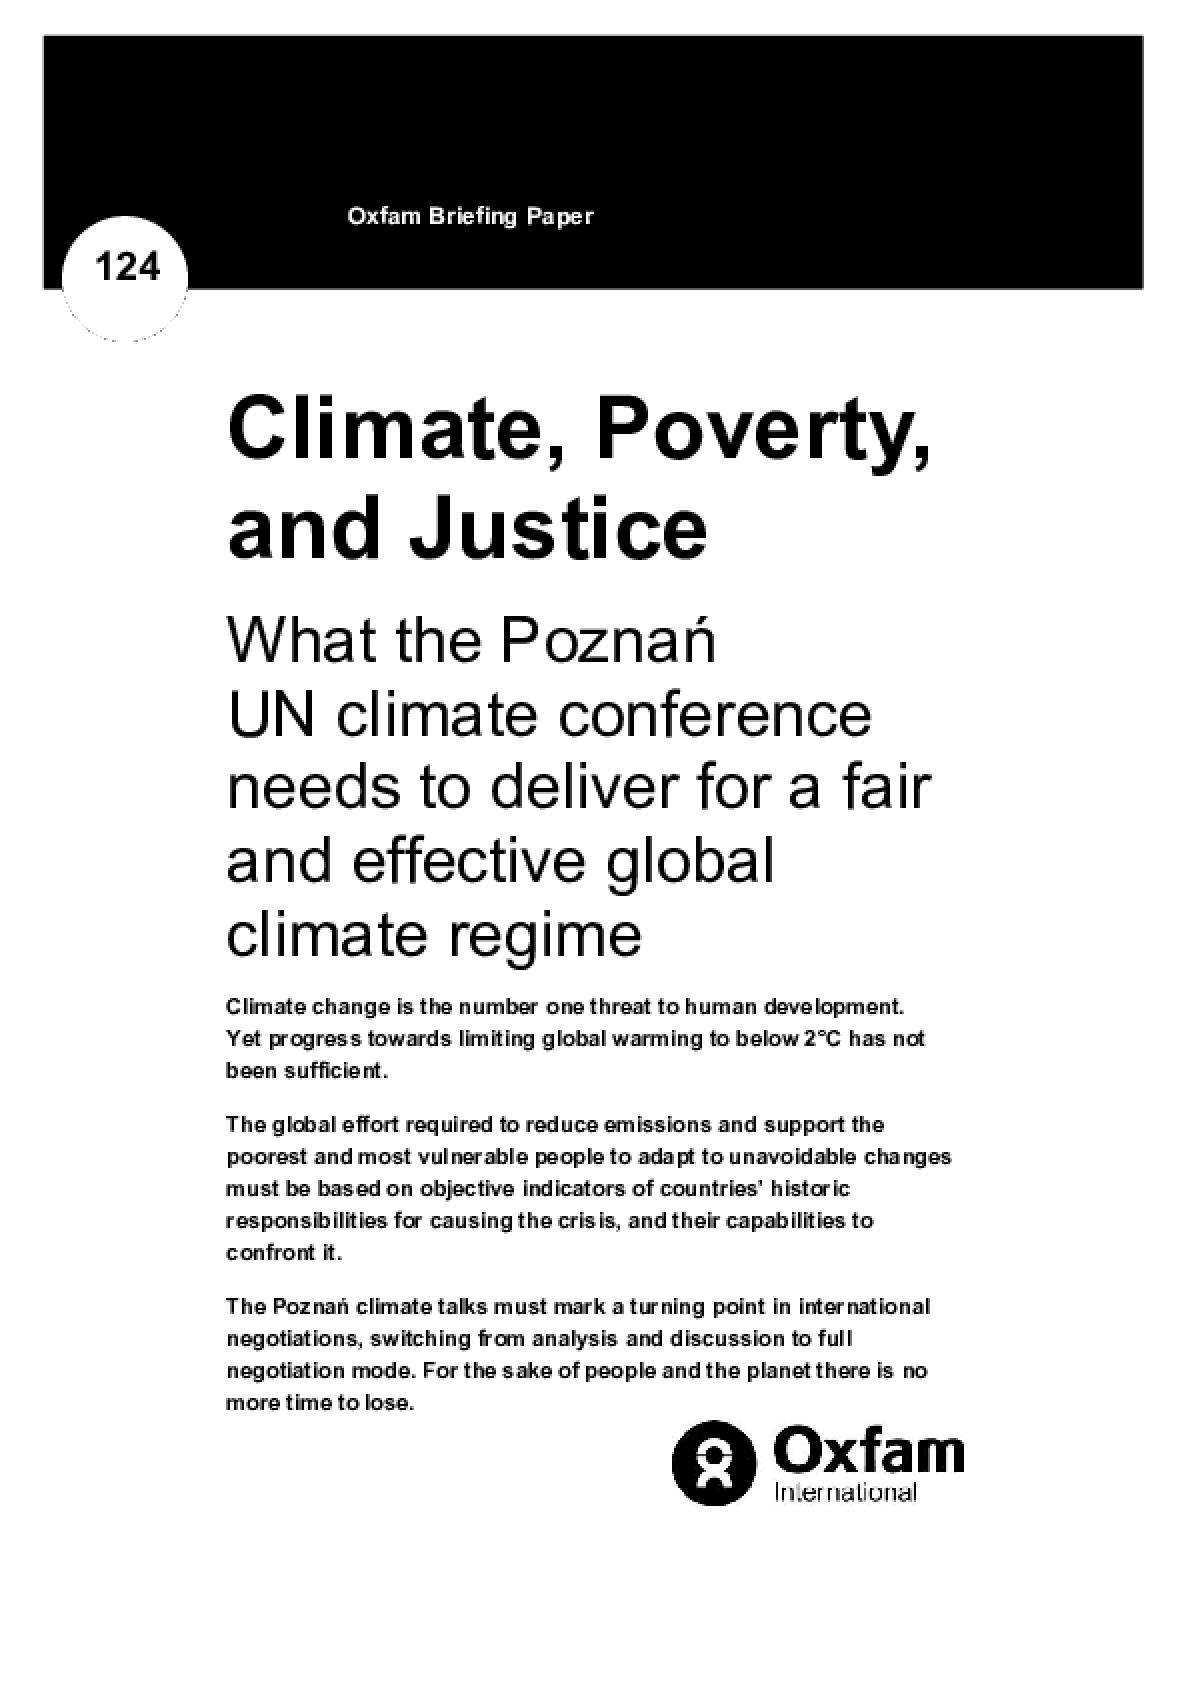 Climate, Poverty, and Justice: What the Poznan UN climate conference needs to deliver for a fair and effective global deal